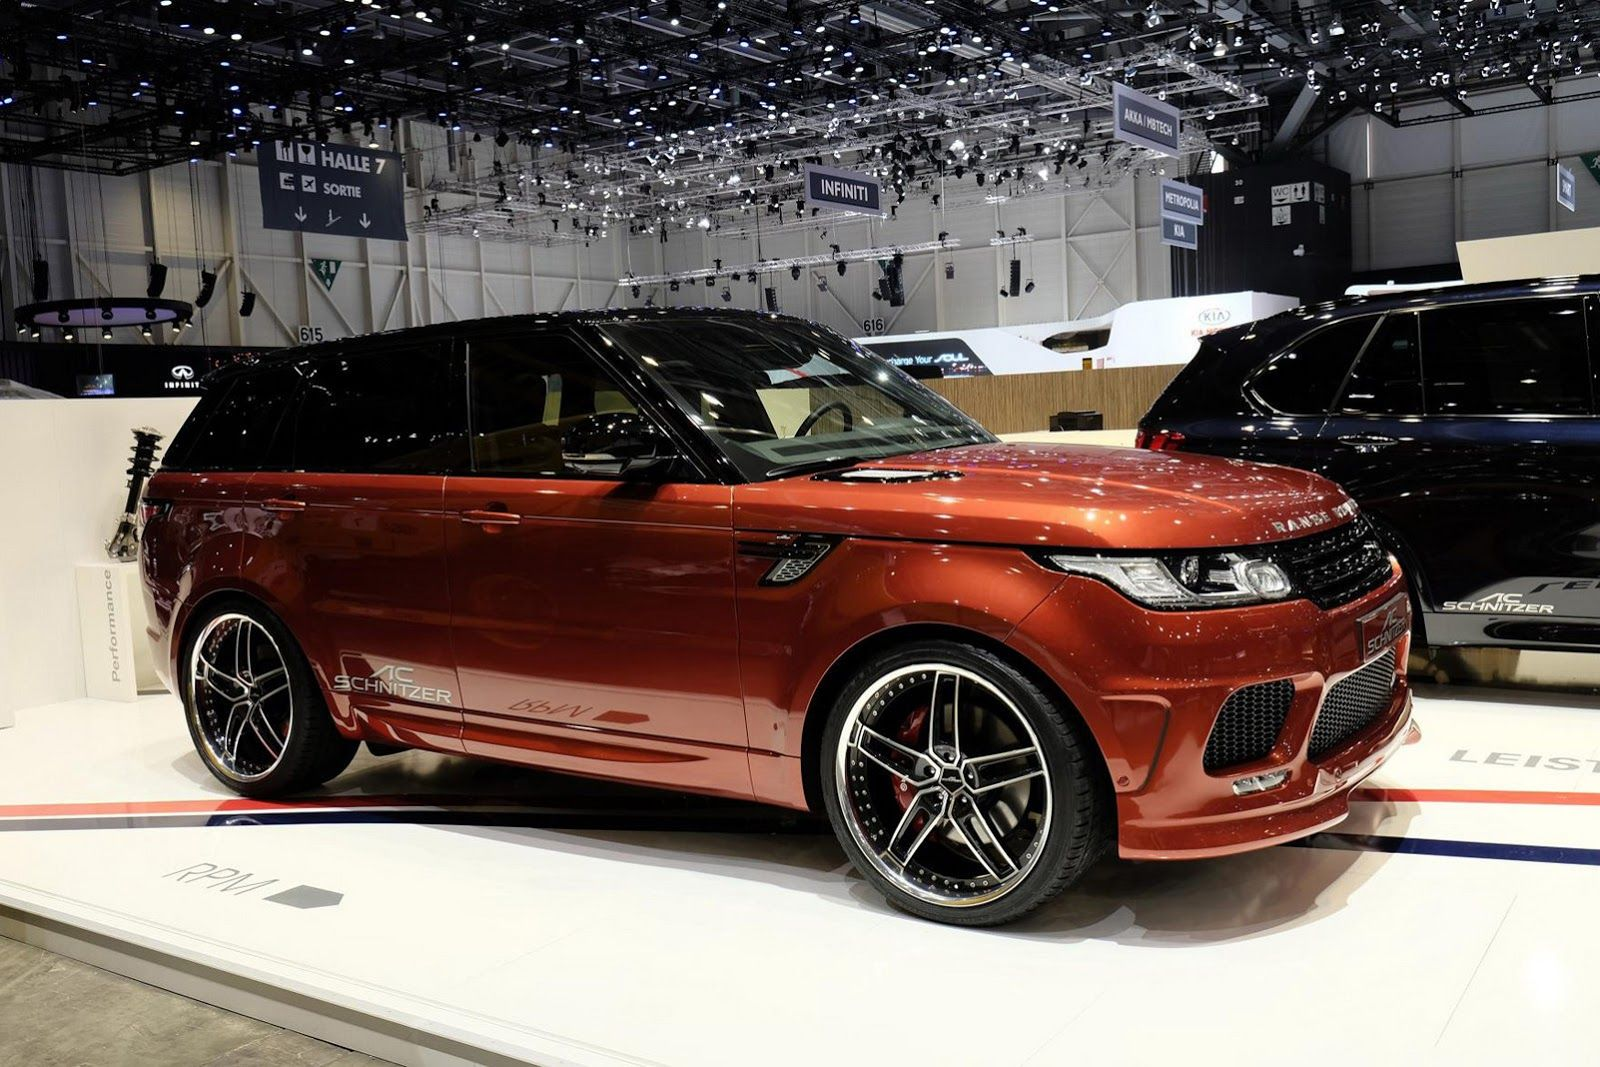 Ac Schnitzer Gives The Range Rover Sport Diesel More Power And The Looks To Show It Carscoops Range Rover Range Rover Sport Red Range Rover